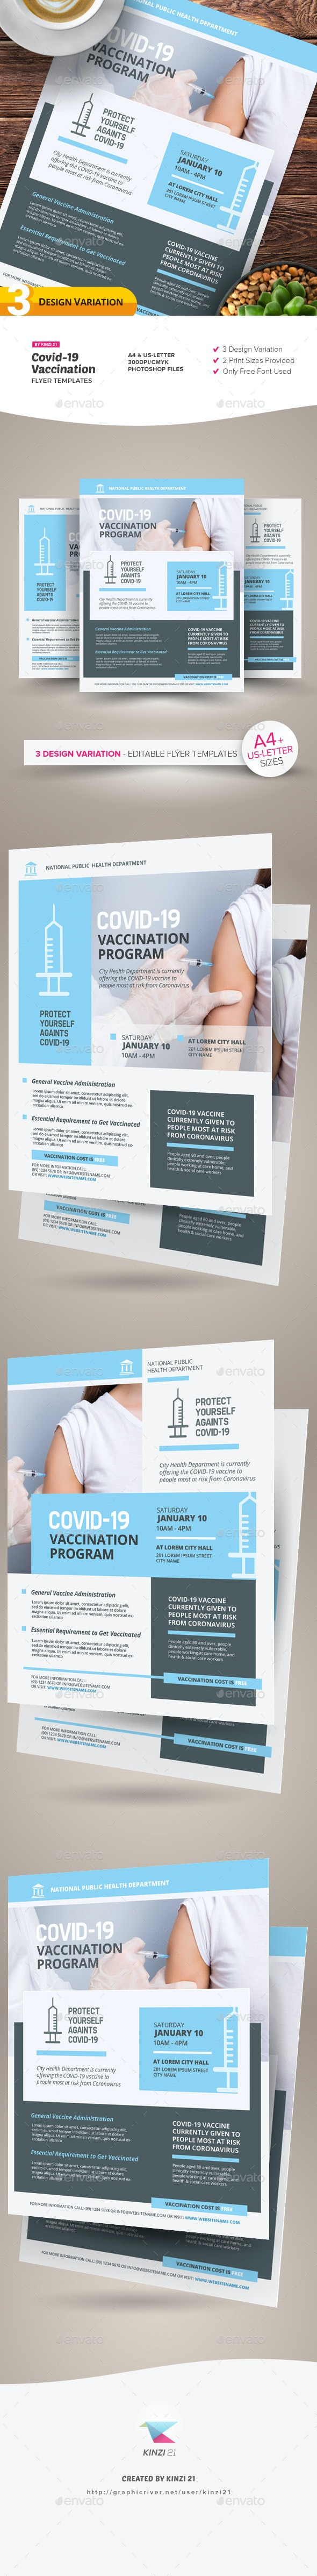 Covid-19 Vaccination Flyer Templates - Corporate Flyers